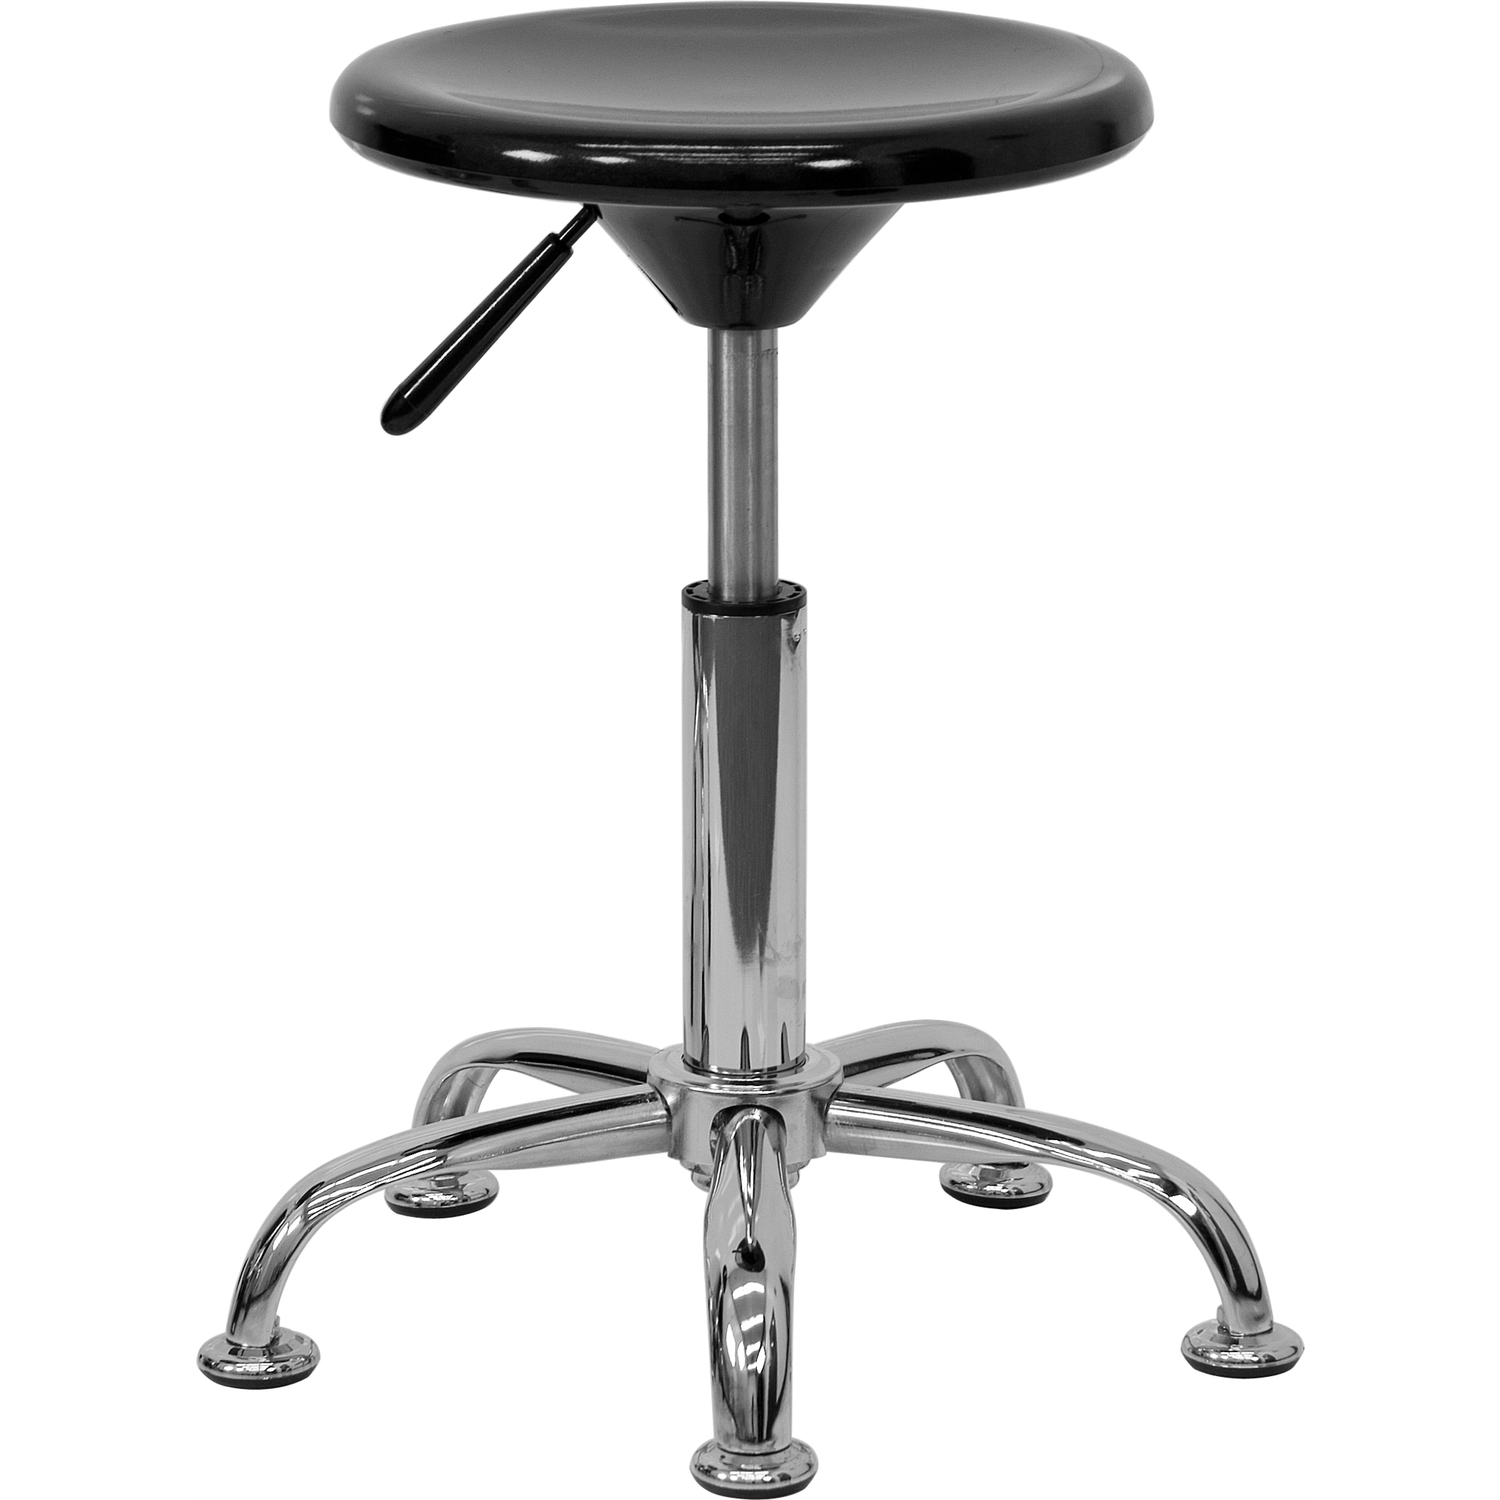 Black Plastic Adjustable Stool With Heavy Duty Polished